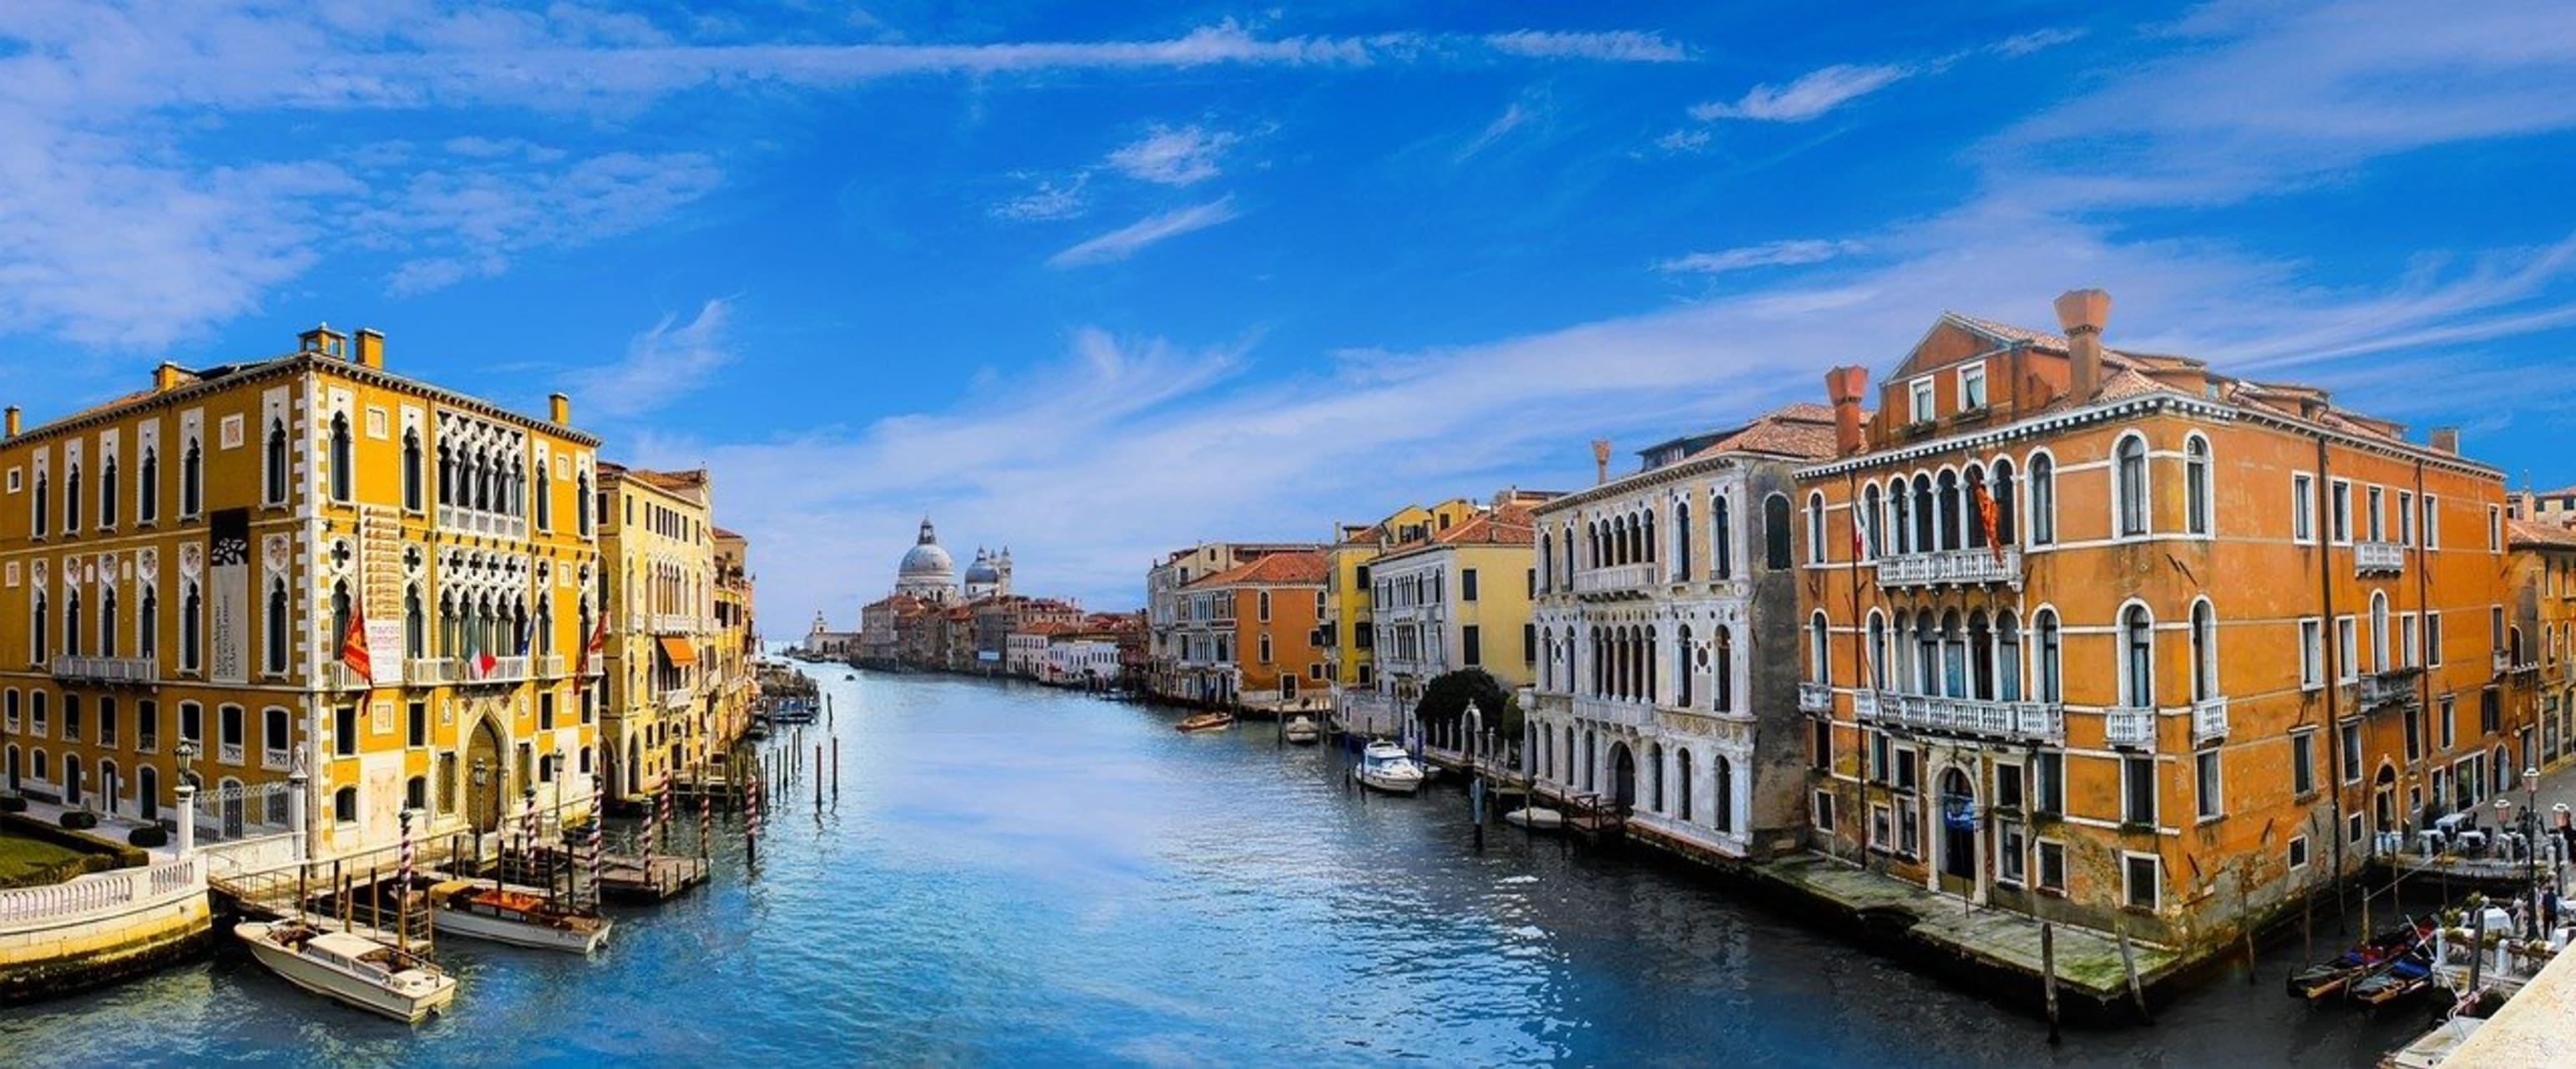 Venice - What's on Venice's South Side?